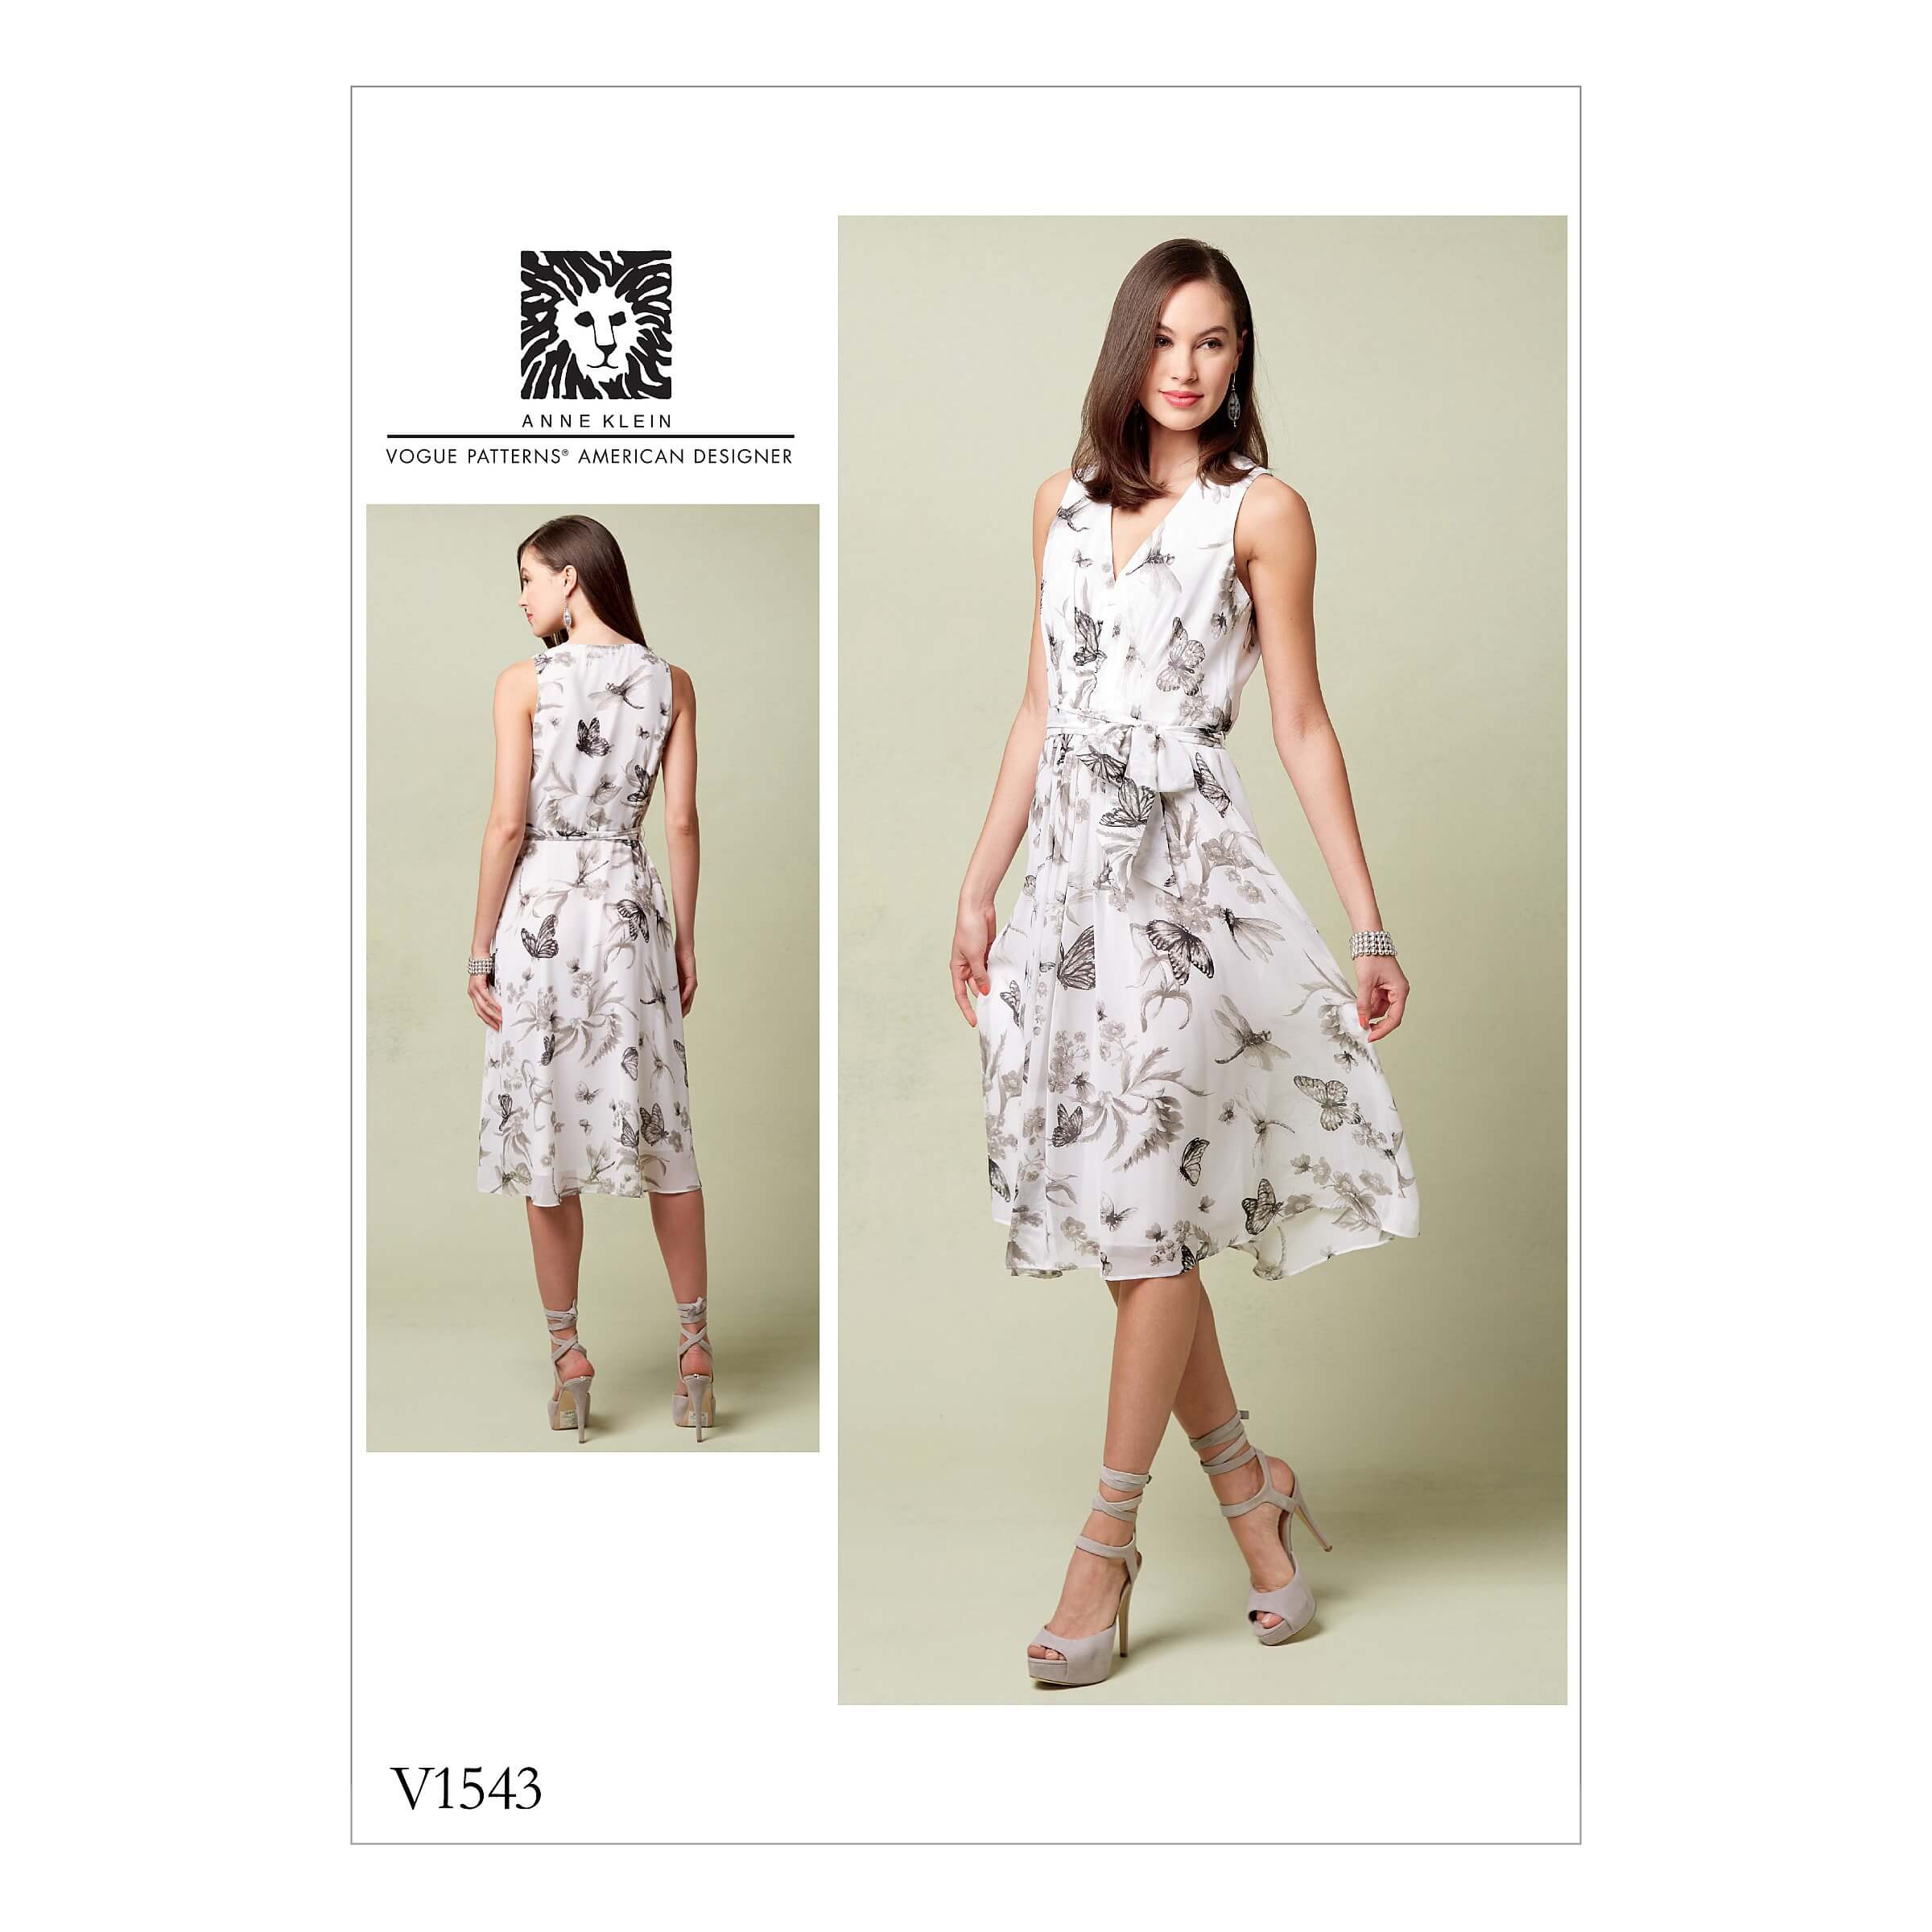 Vogue Sewing Pattern V1543 Women's V Neck Dress with Front Pleat Detail